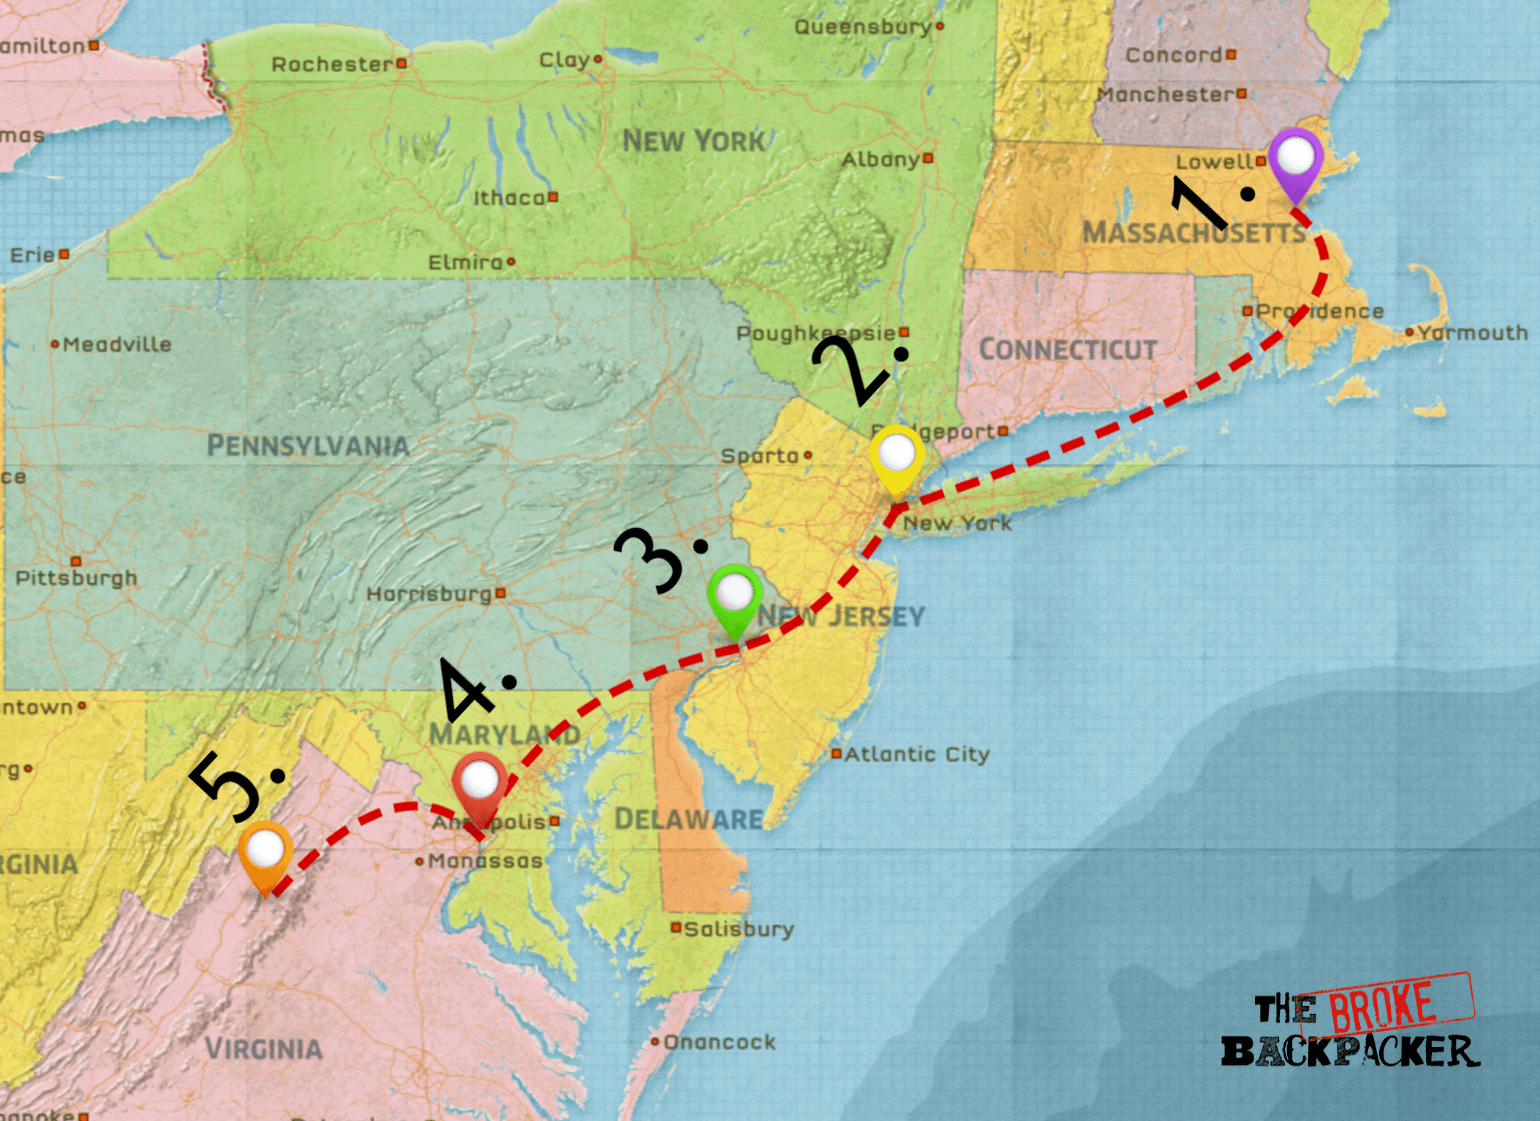 east coast road trip map - driving itinerary #1